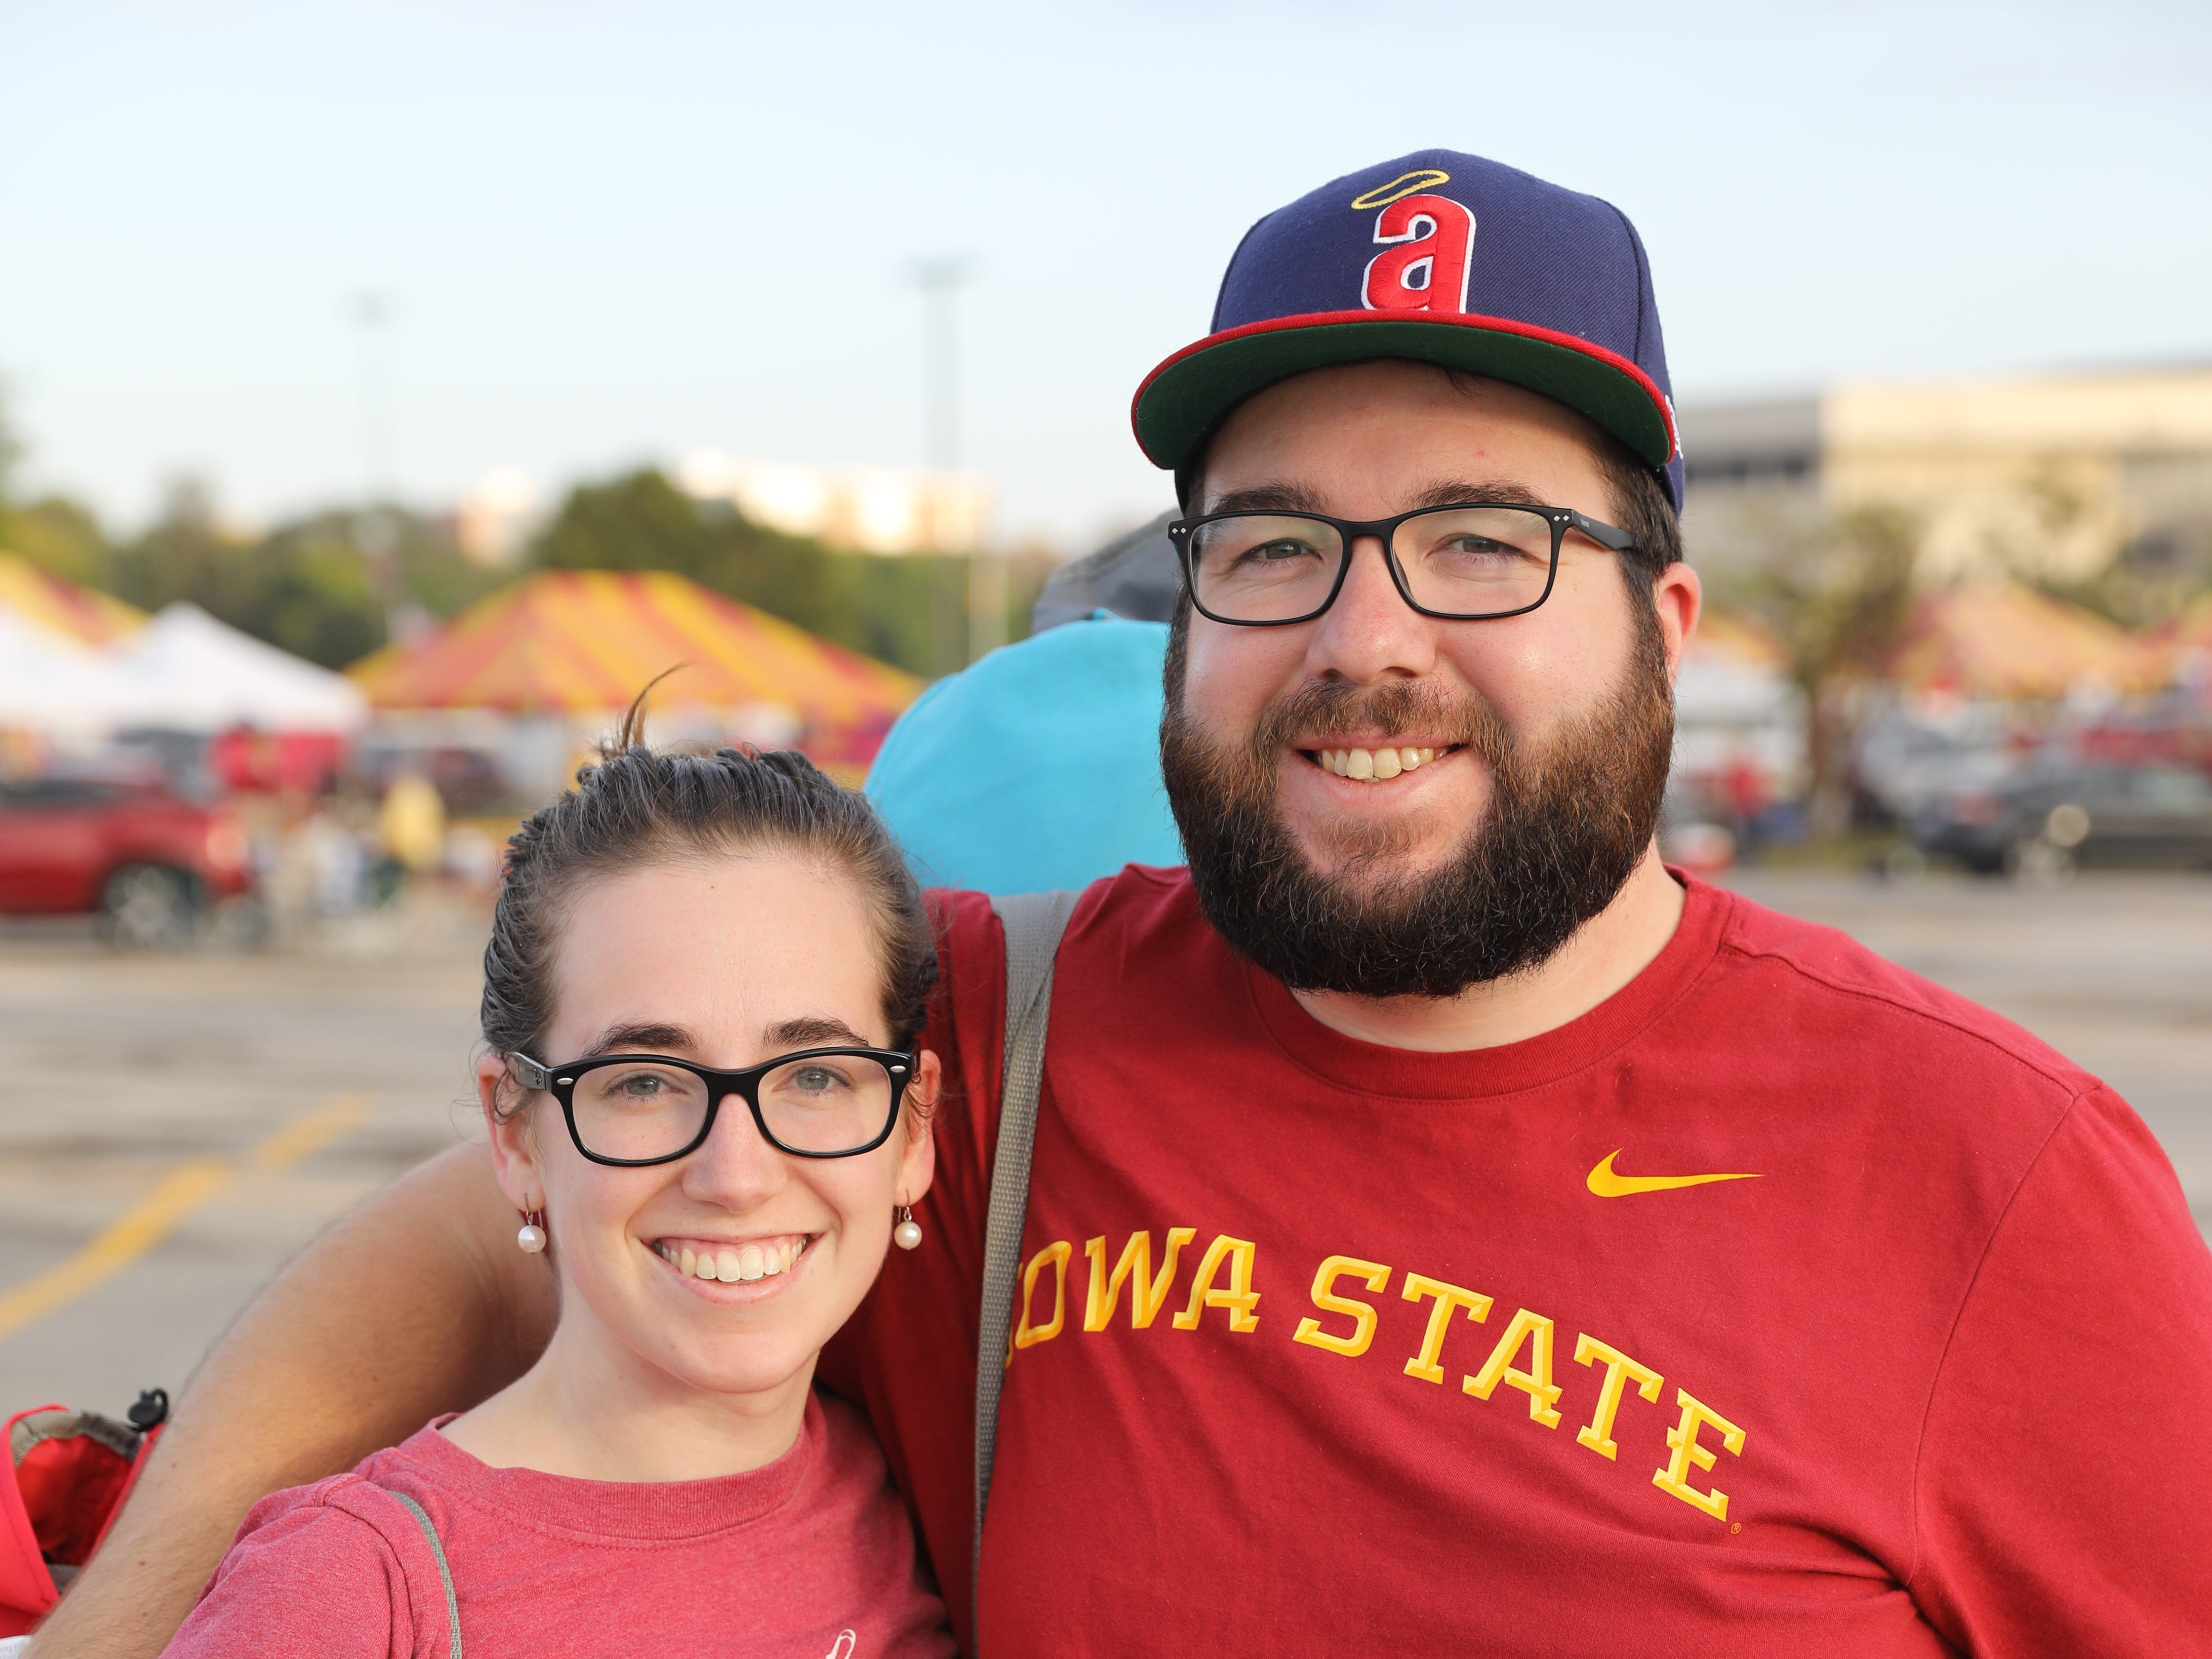 Rebecca Sheehe, 28, and Casey Sheehy, 27, both of Chicago, Saturday, Sept. 15, 2018, before the Iowa State football game against Oklahoma in Ames.